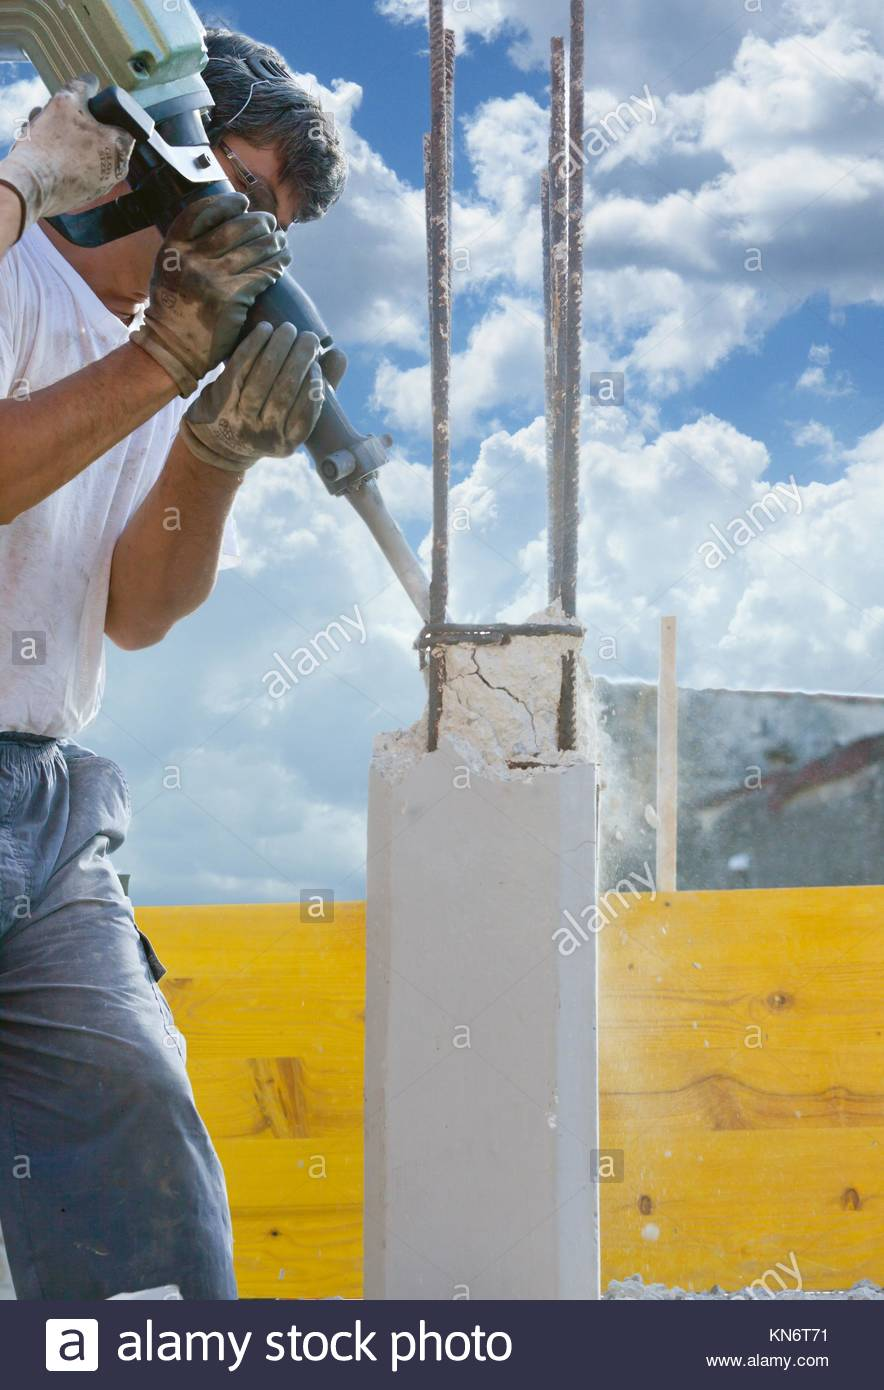 how to use a jackhammer to break cement